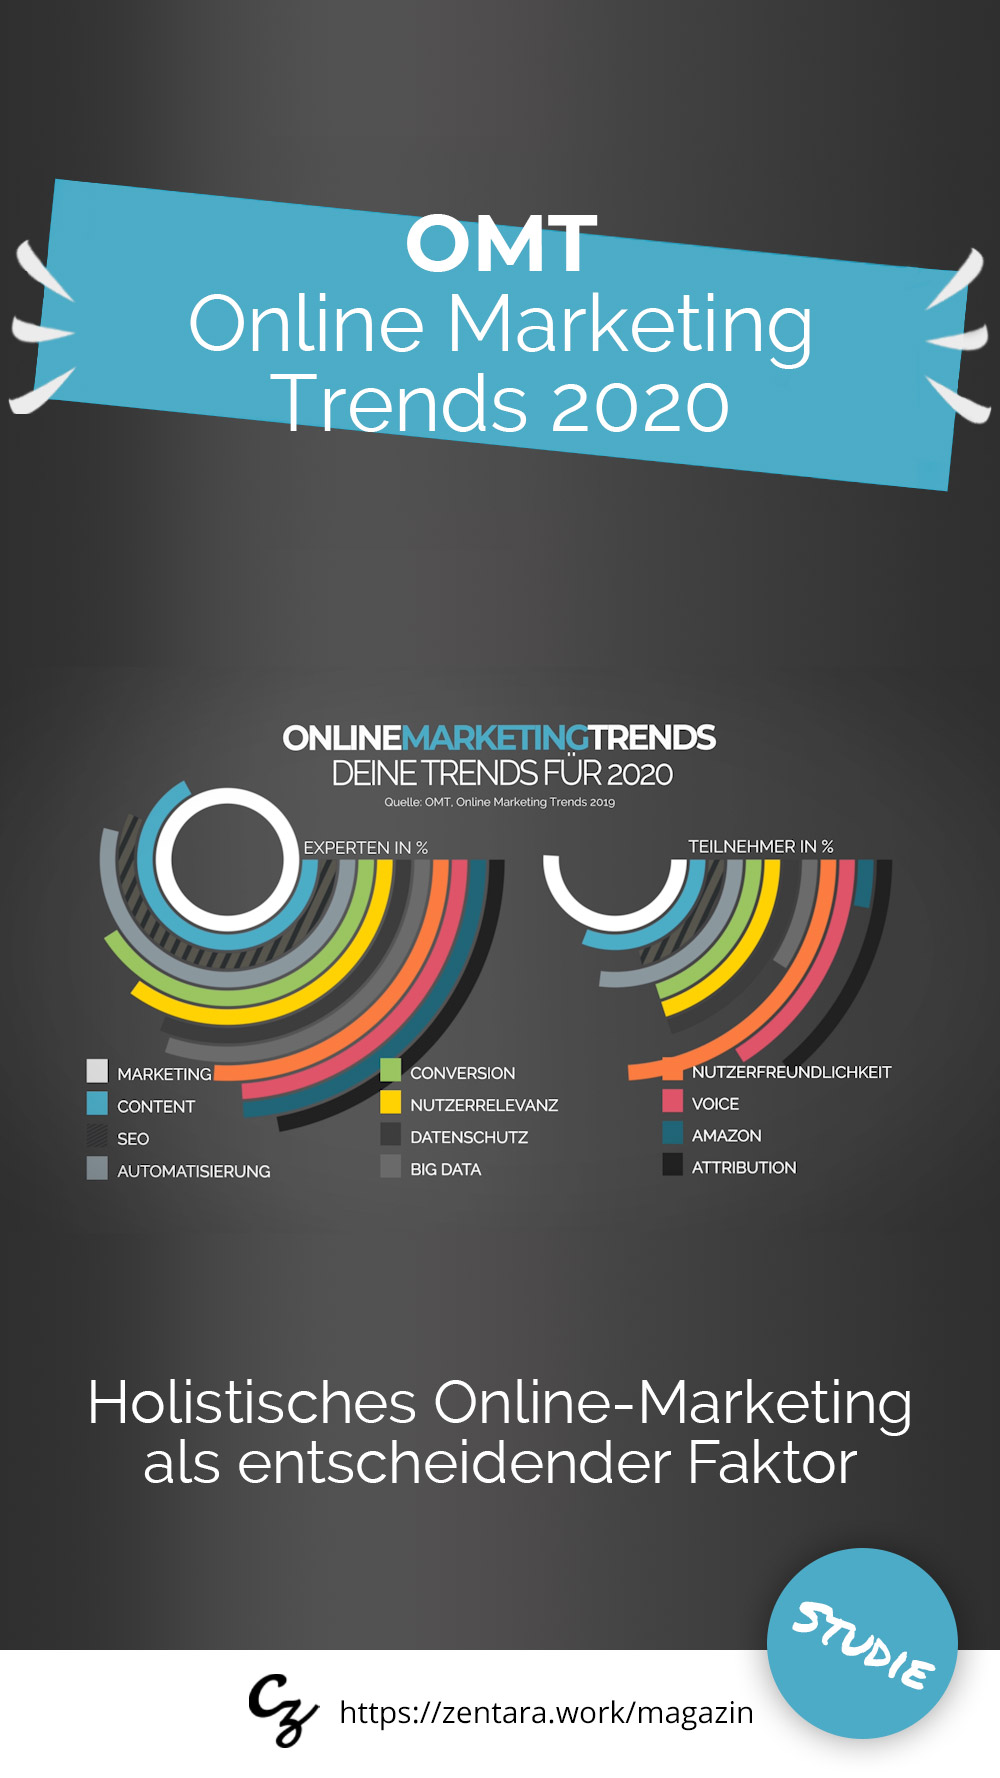 OMT: Online Marketing Trends 2020 [Studie]